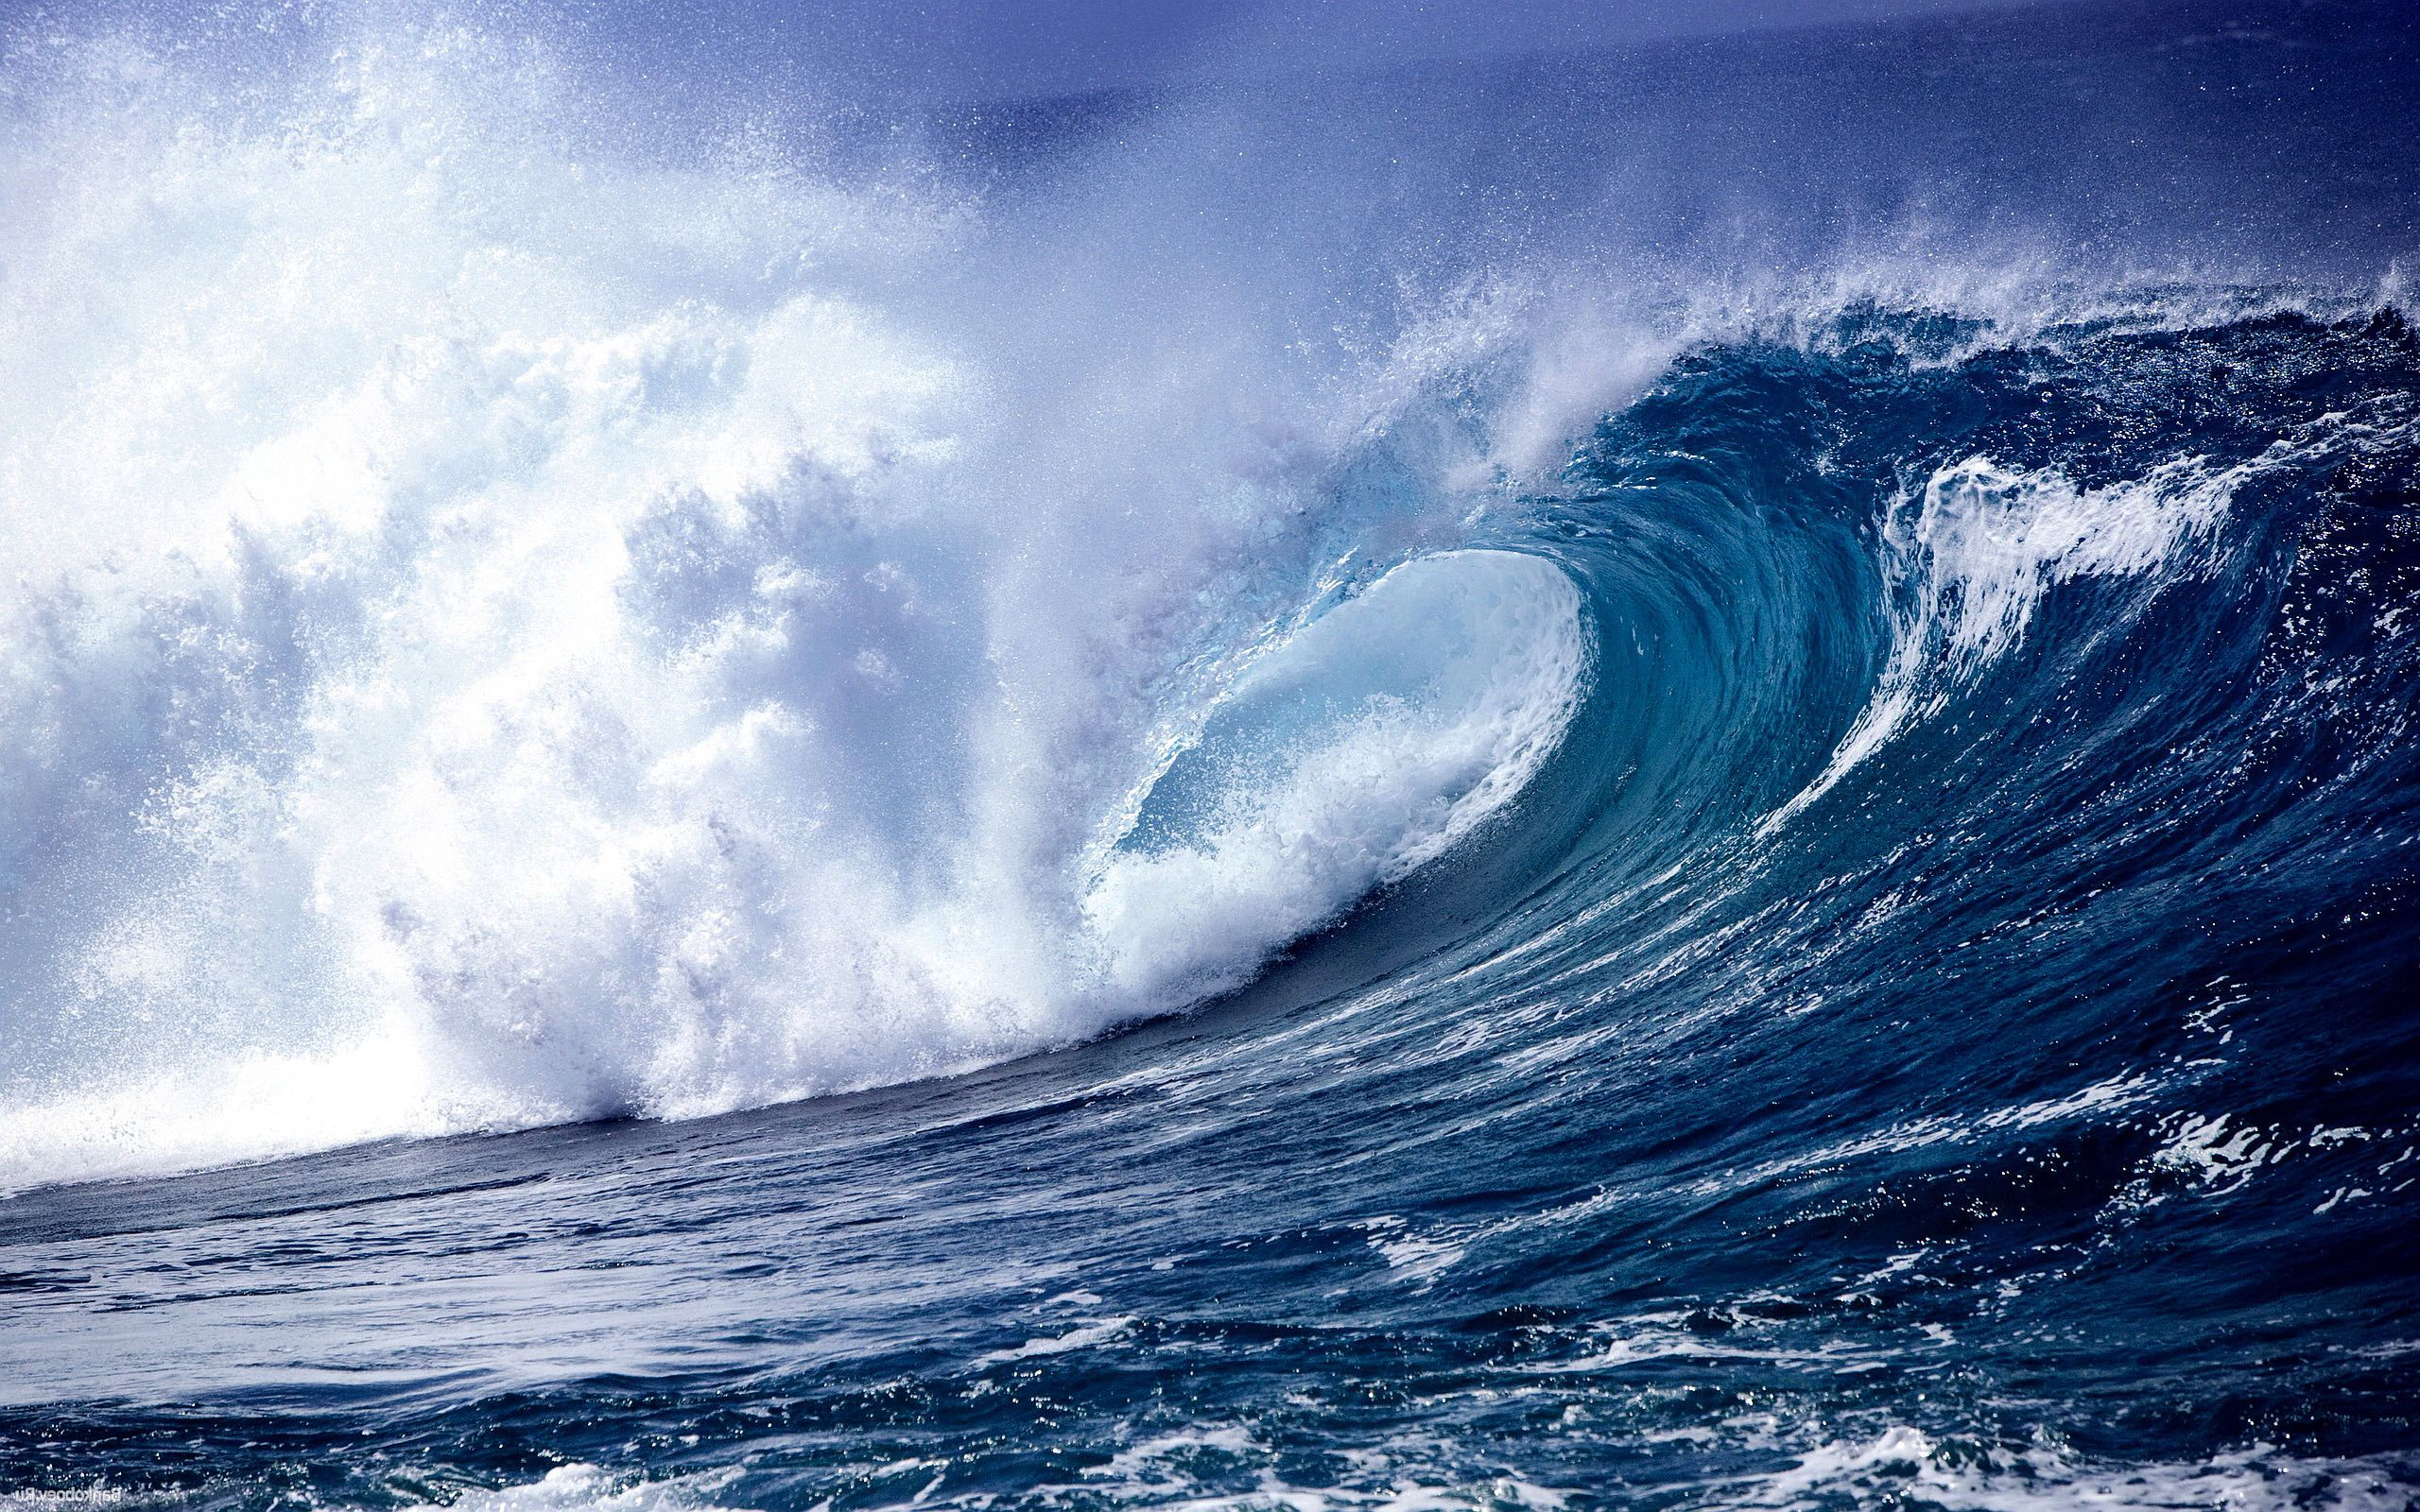 HD wallpaper download Glowing Blue Waves Explained